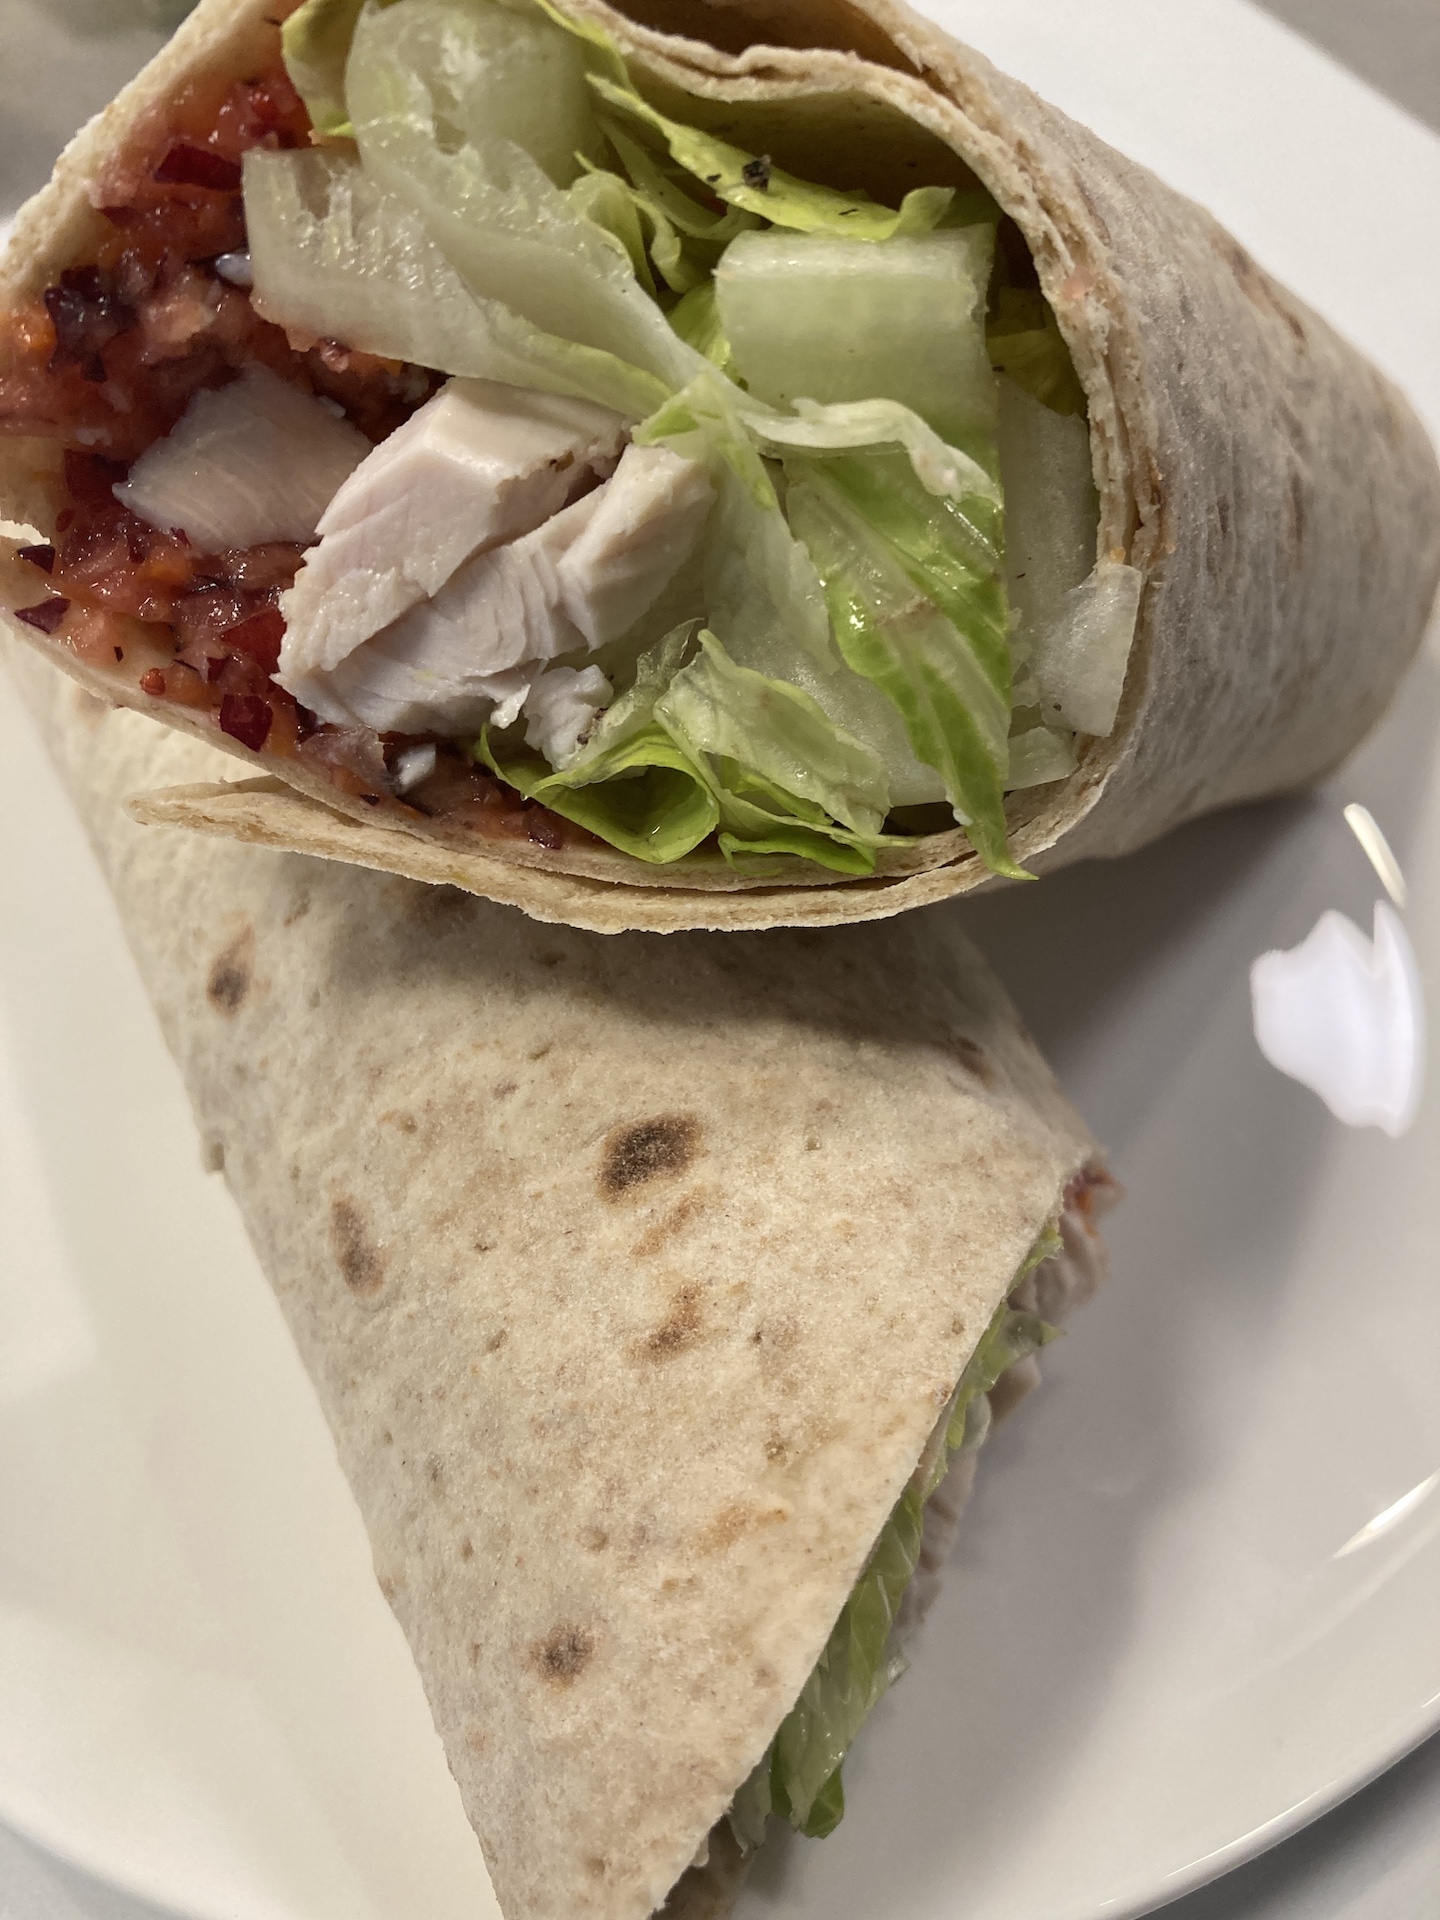 Leftover Turkey Sandwich or Wrap